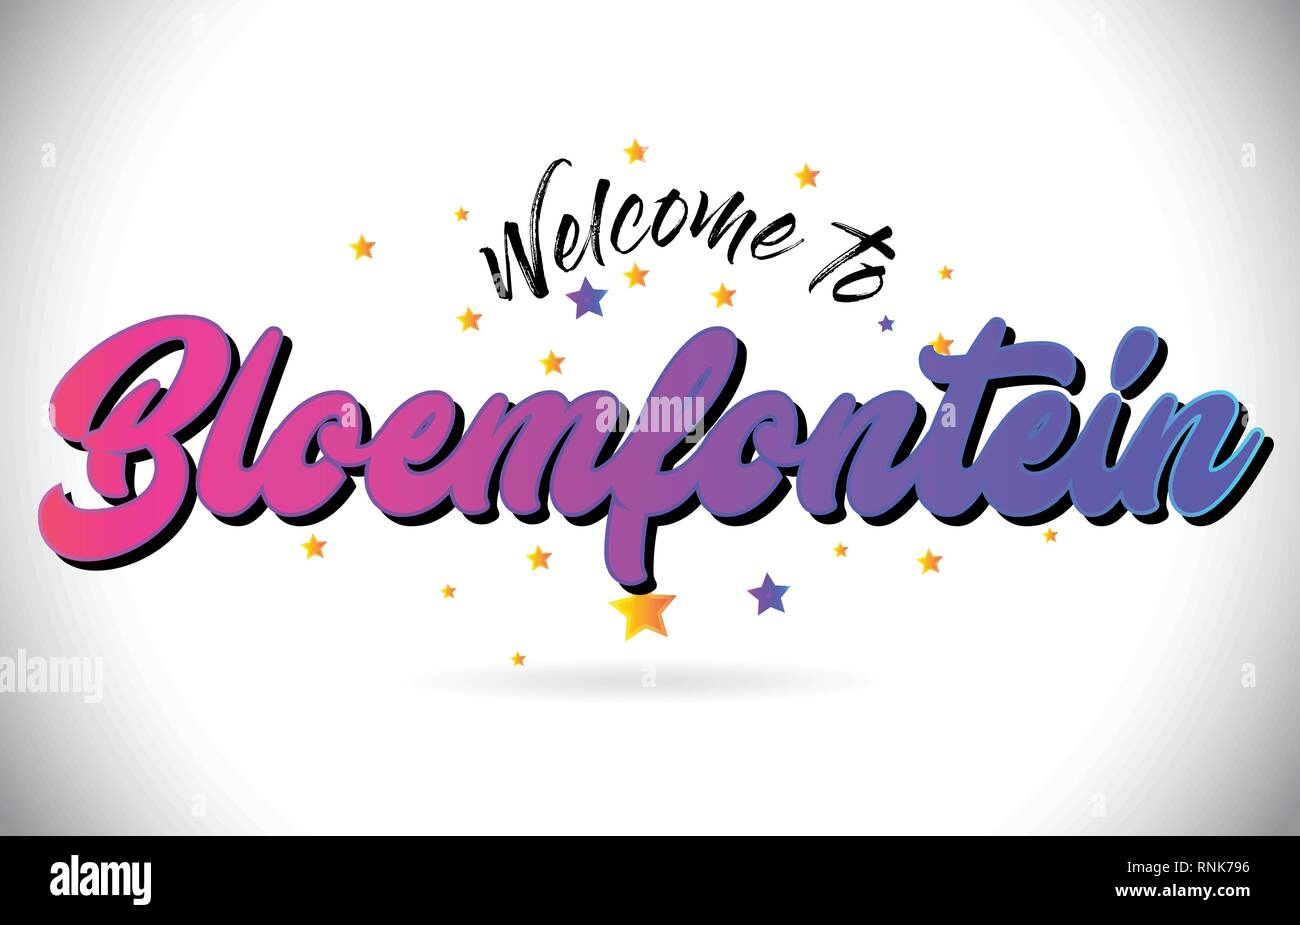 Bloemfontein Welcome To Word Text with Purple Pink Handwritten Font and Yellow Stars Shape Design Vector Illusration. - Stock Image